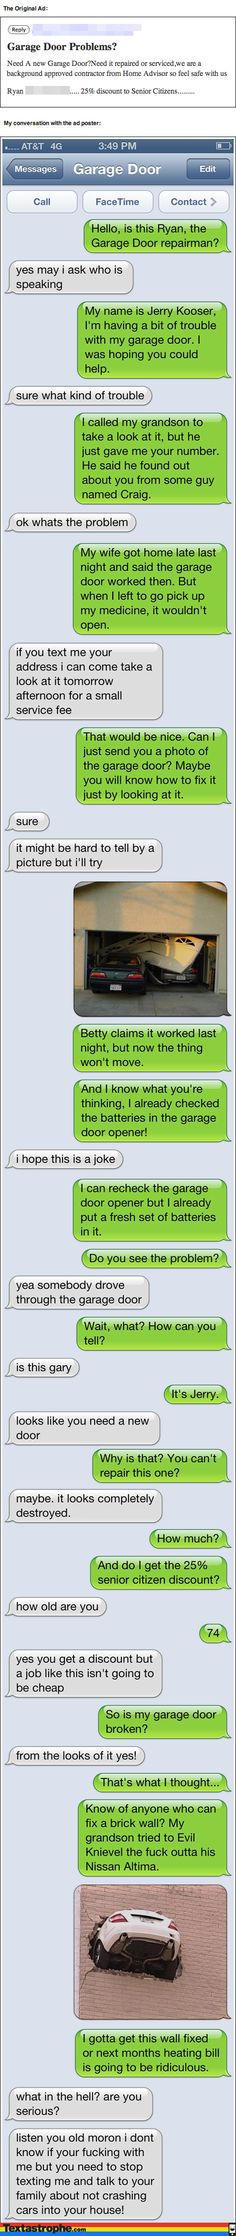 Hilarious texting prank at Textastrophe